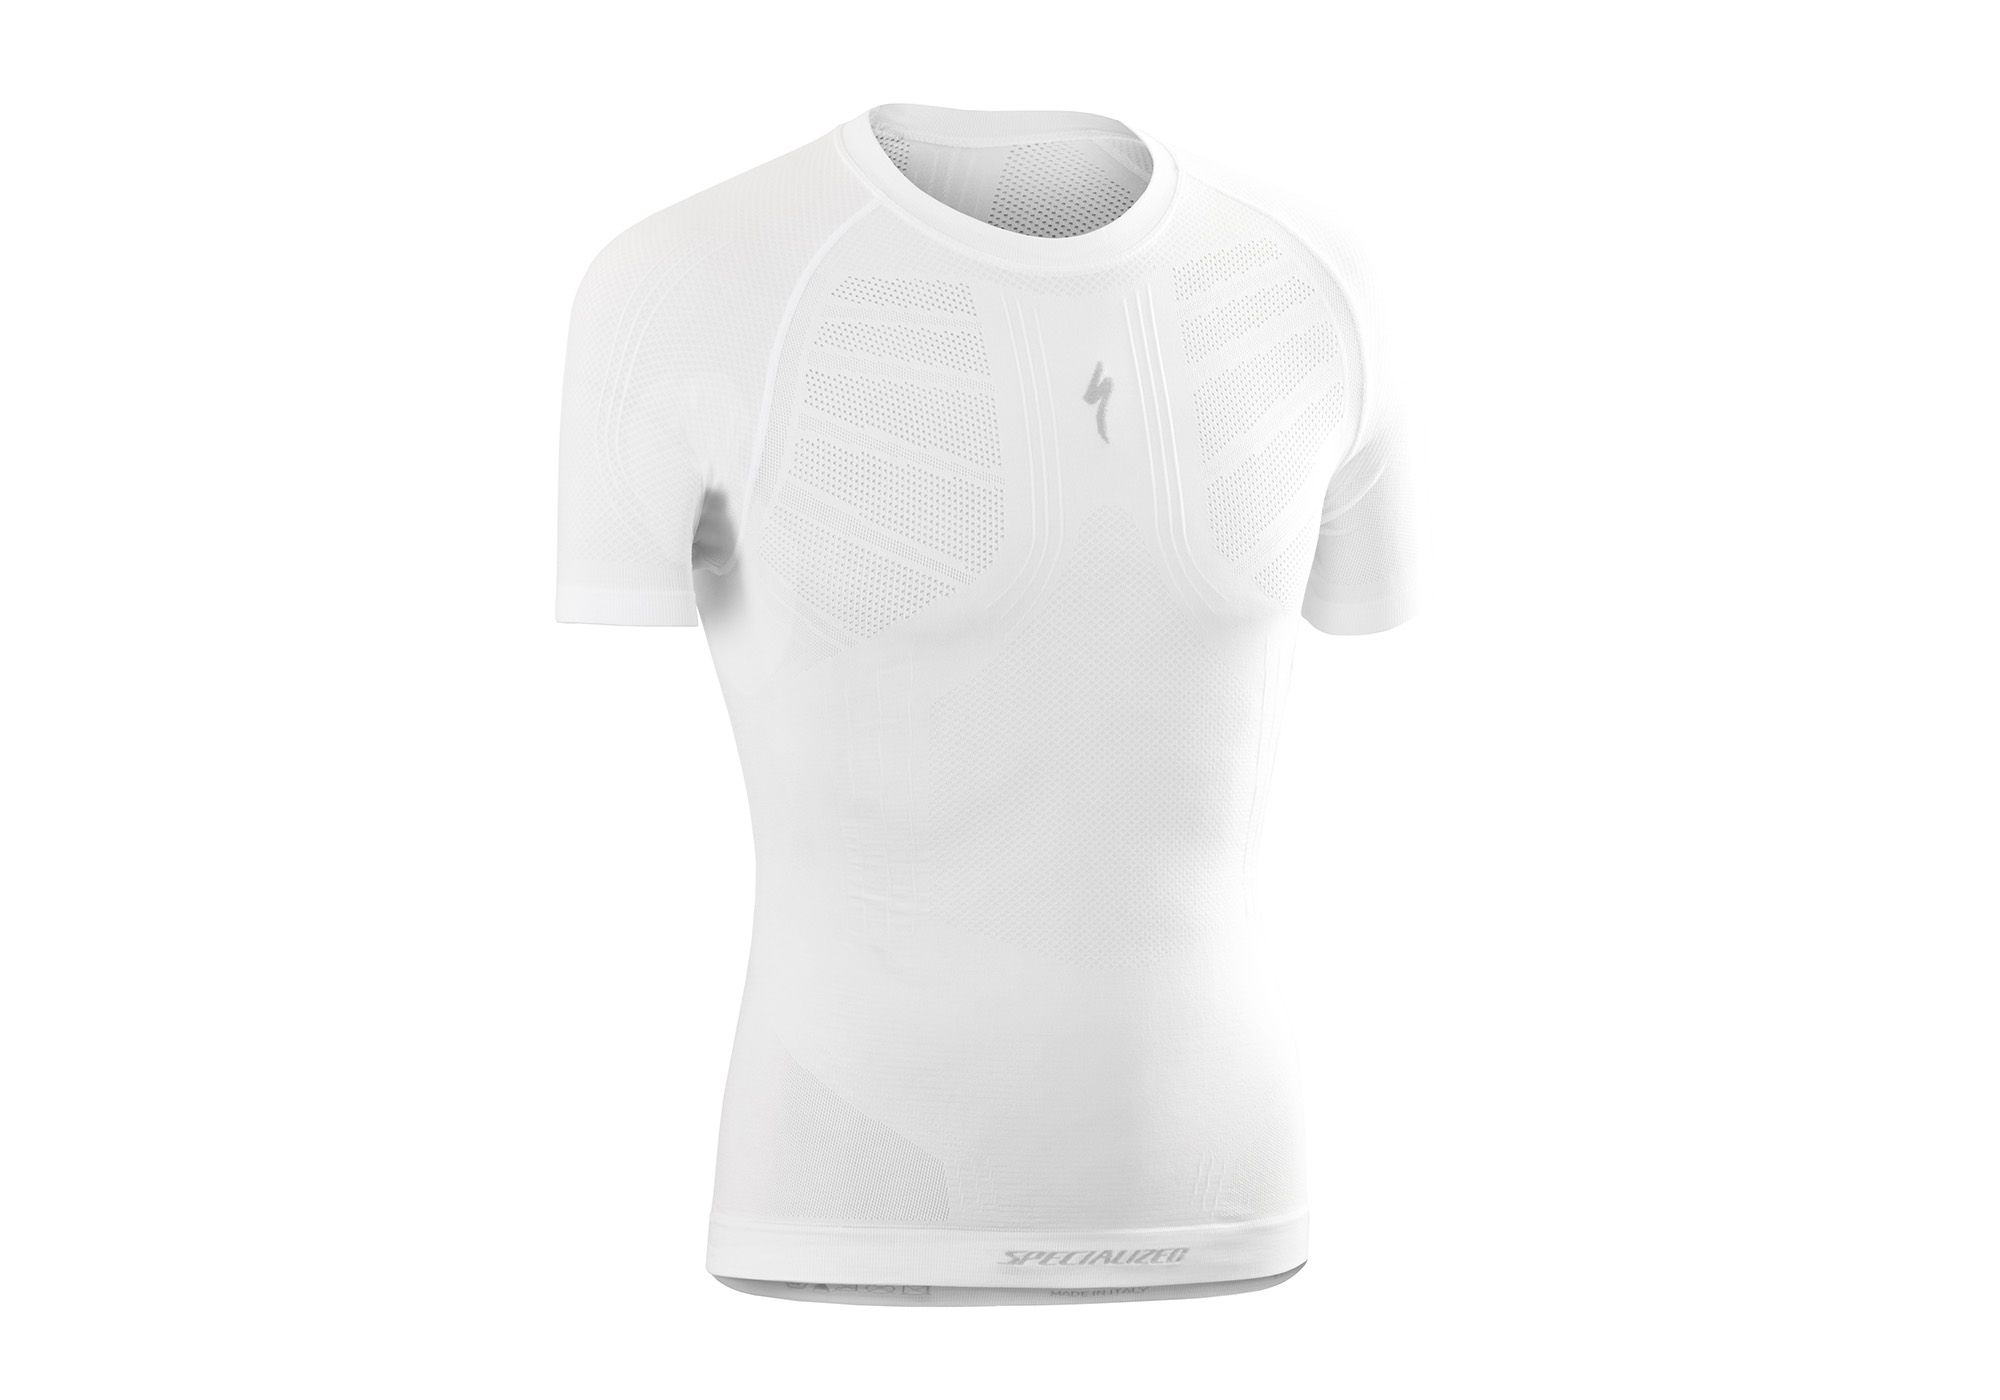 CAMISETA INTERIOR SIN CONSTURAS PRO - SPECIALIZED